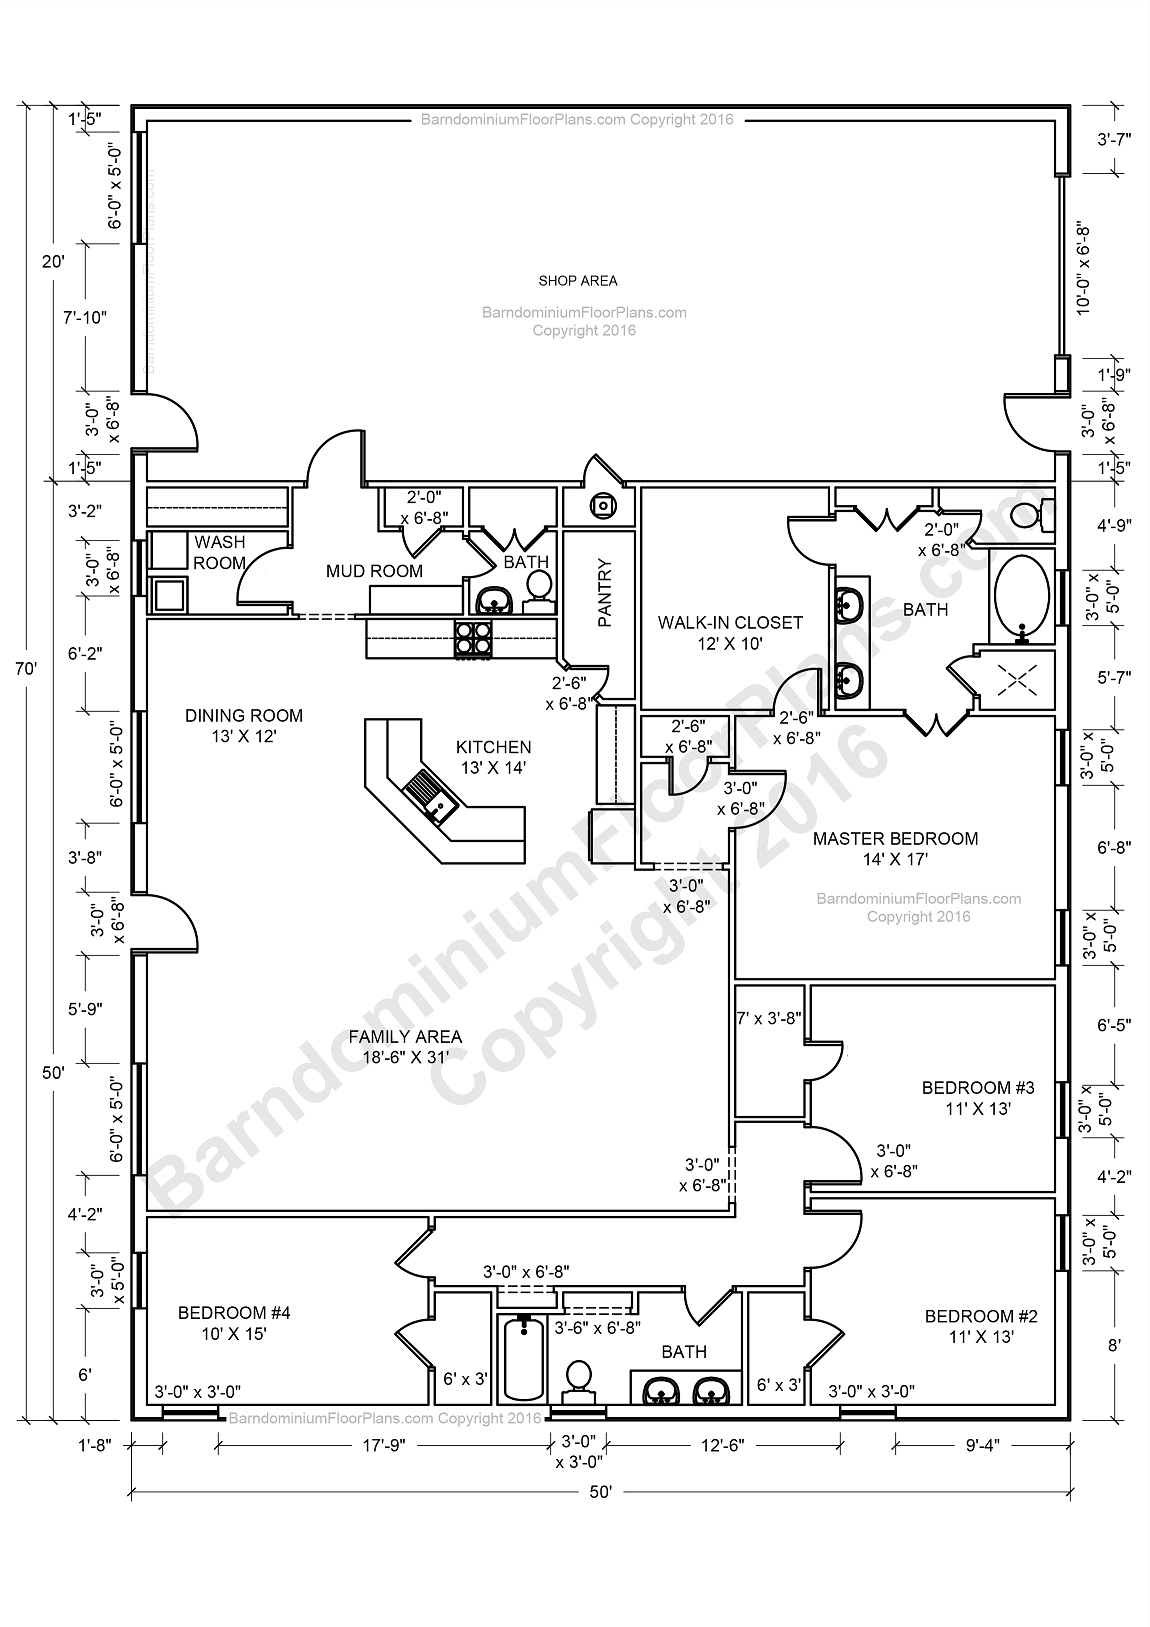 Beast metal building barndominium floor plans and design for 40x60 metal building floor plans